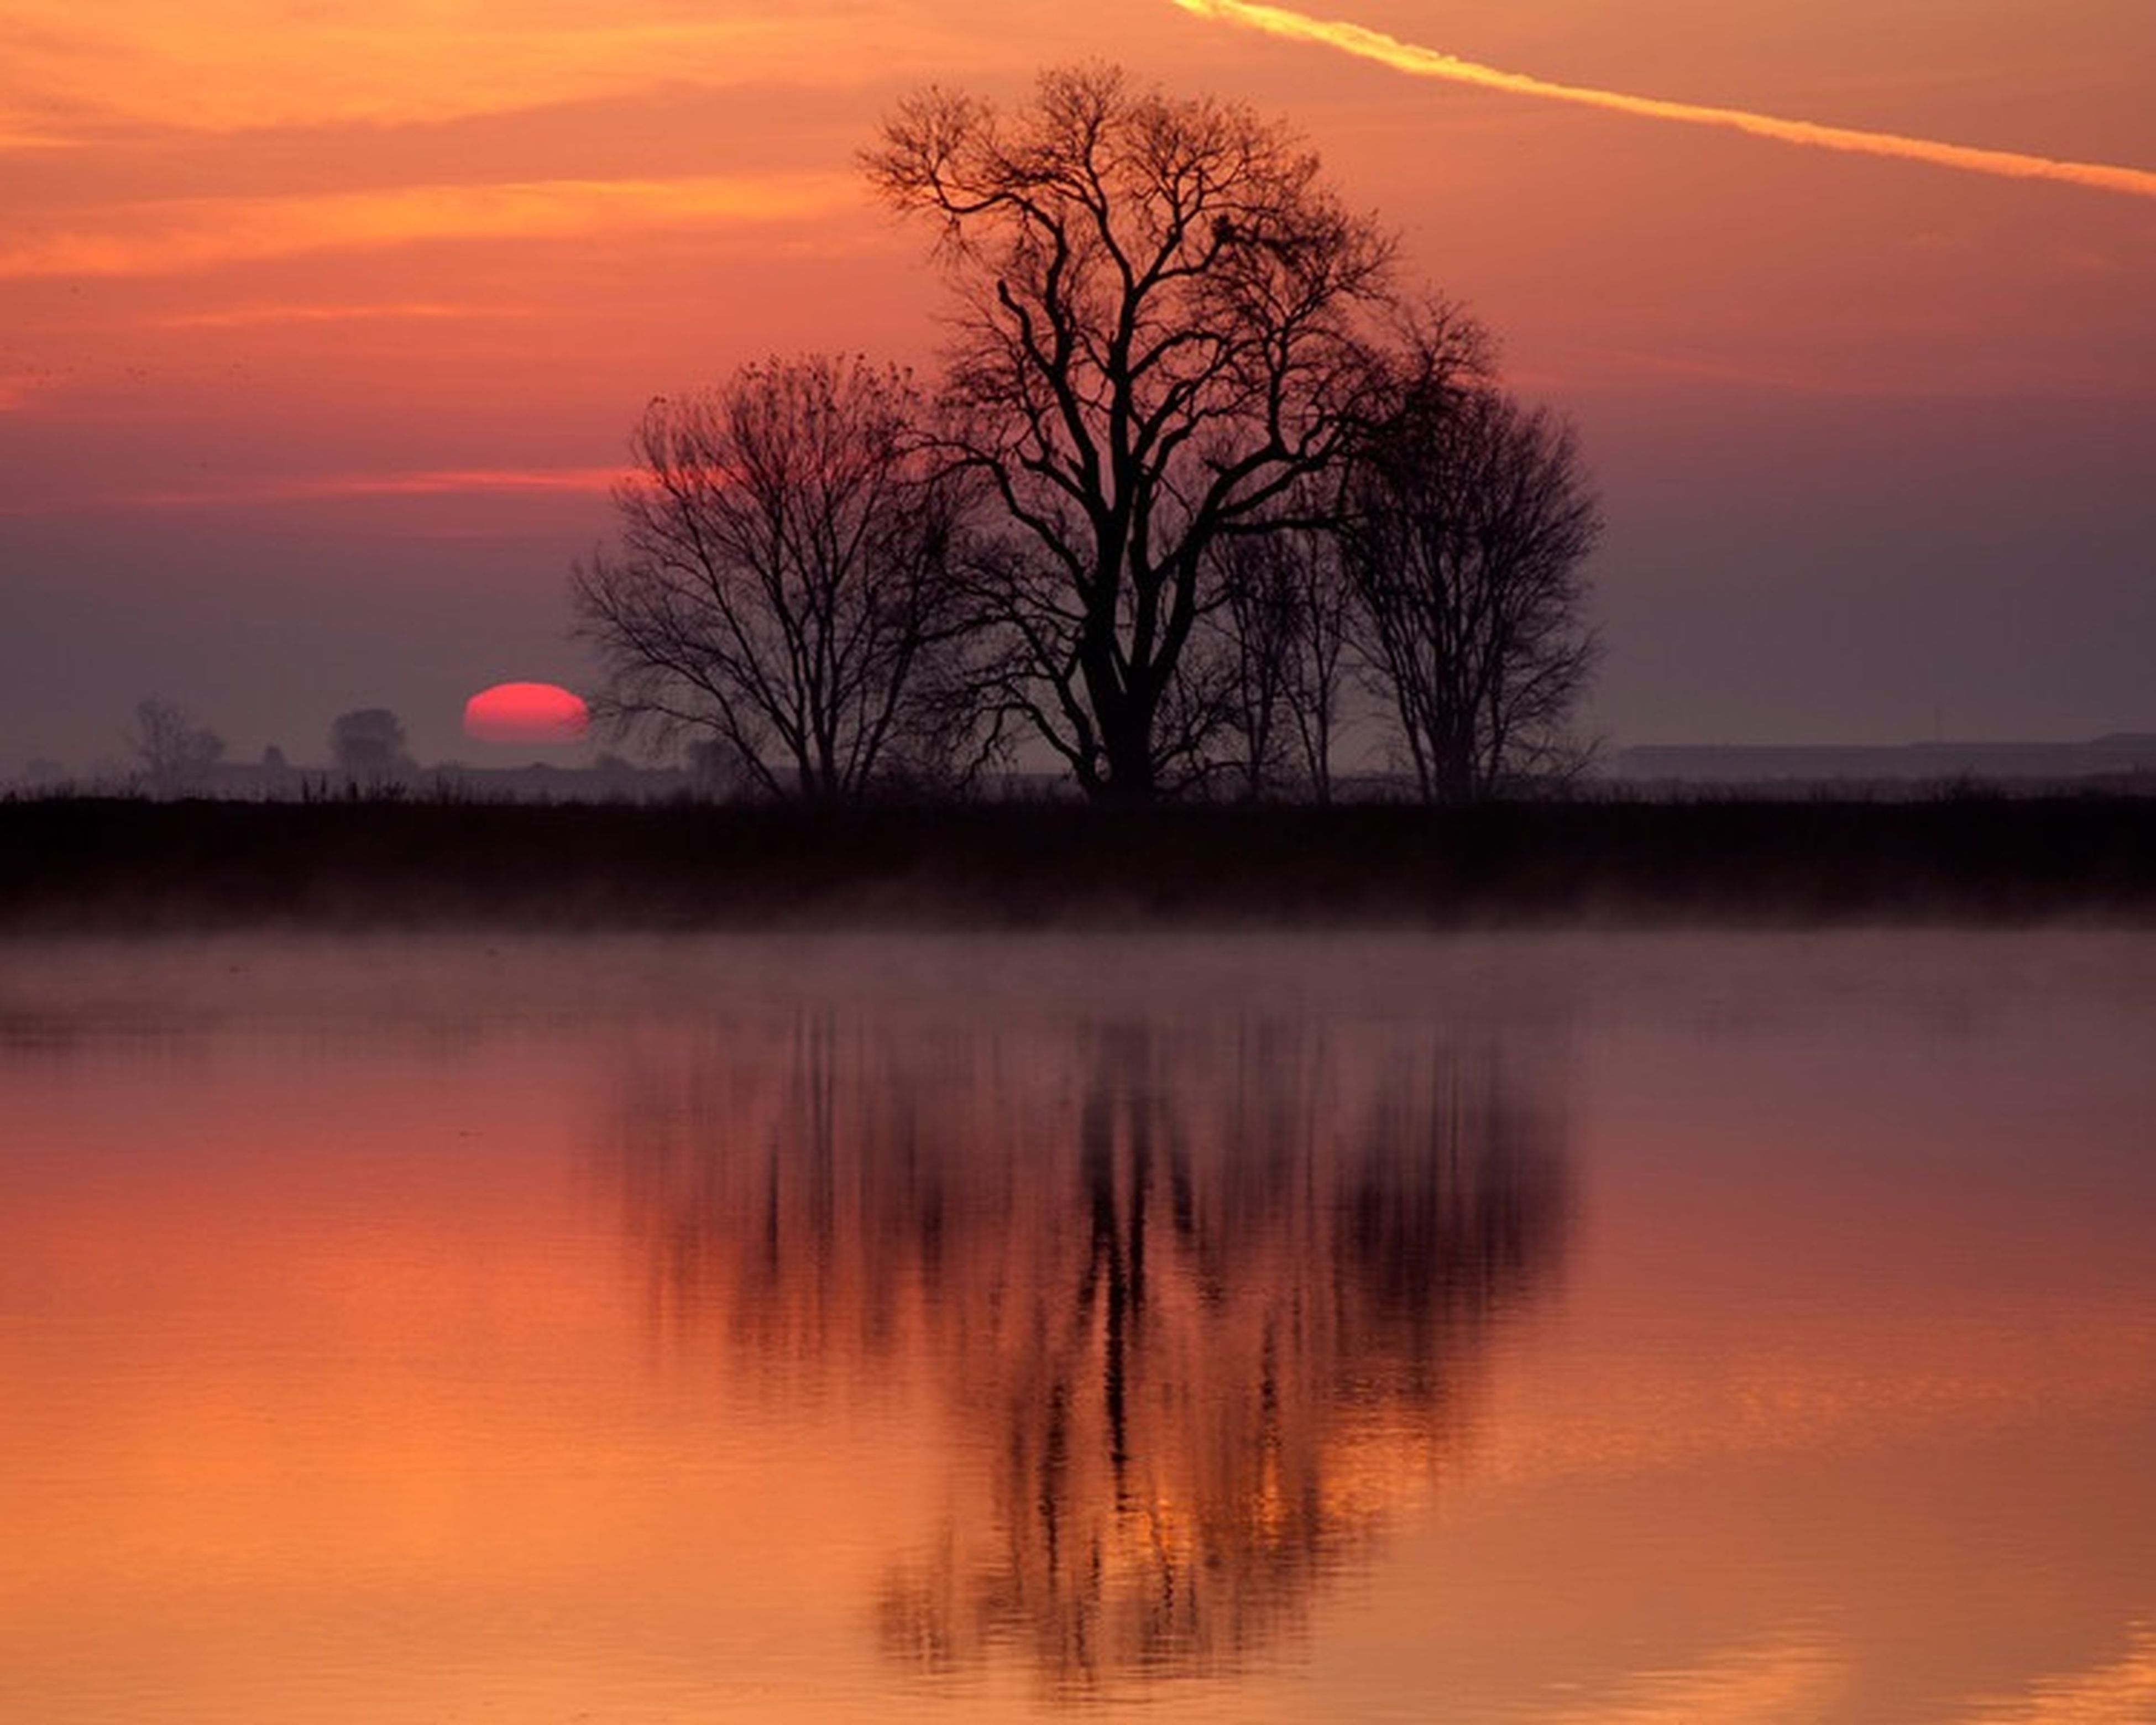 sunset, tranquil scene, tranquility, scenics, bare tree, orange color, silhouette, sky, beauty in nature, water, reflection, idyllic, tree, nature, lake, sun, cloud - sky, waterfront, dramatic sky, landscape